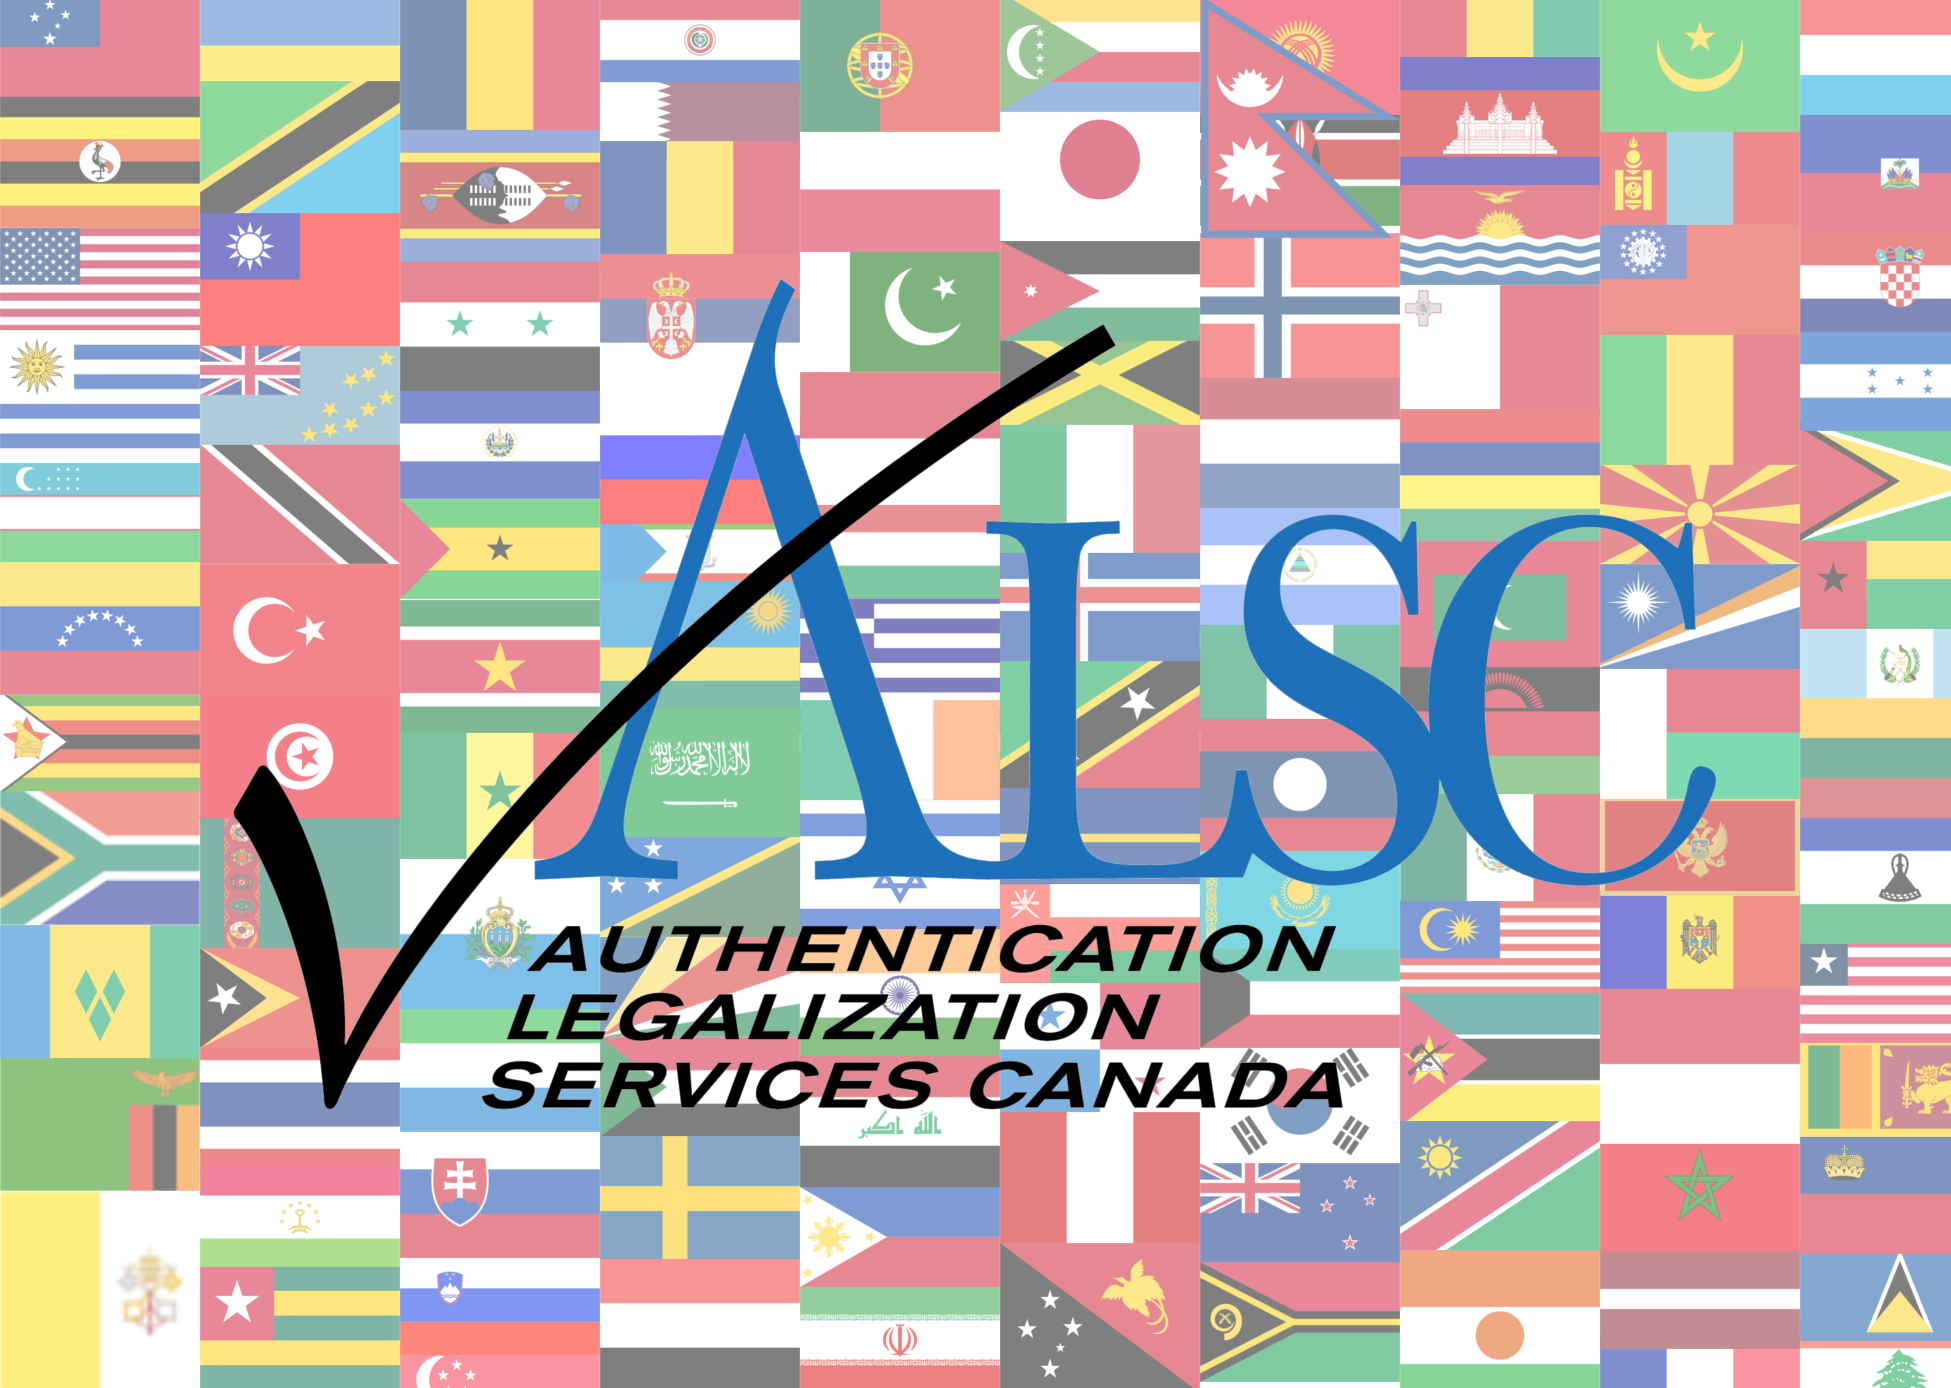 Authentication Legalization Services Canada